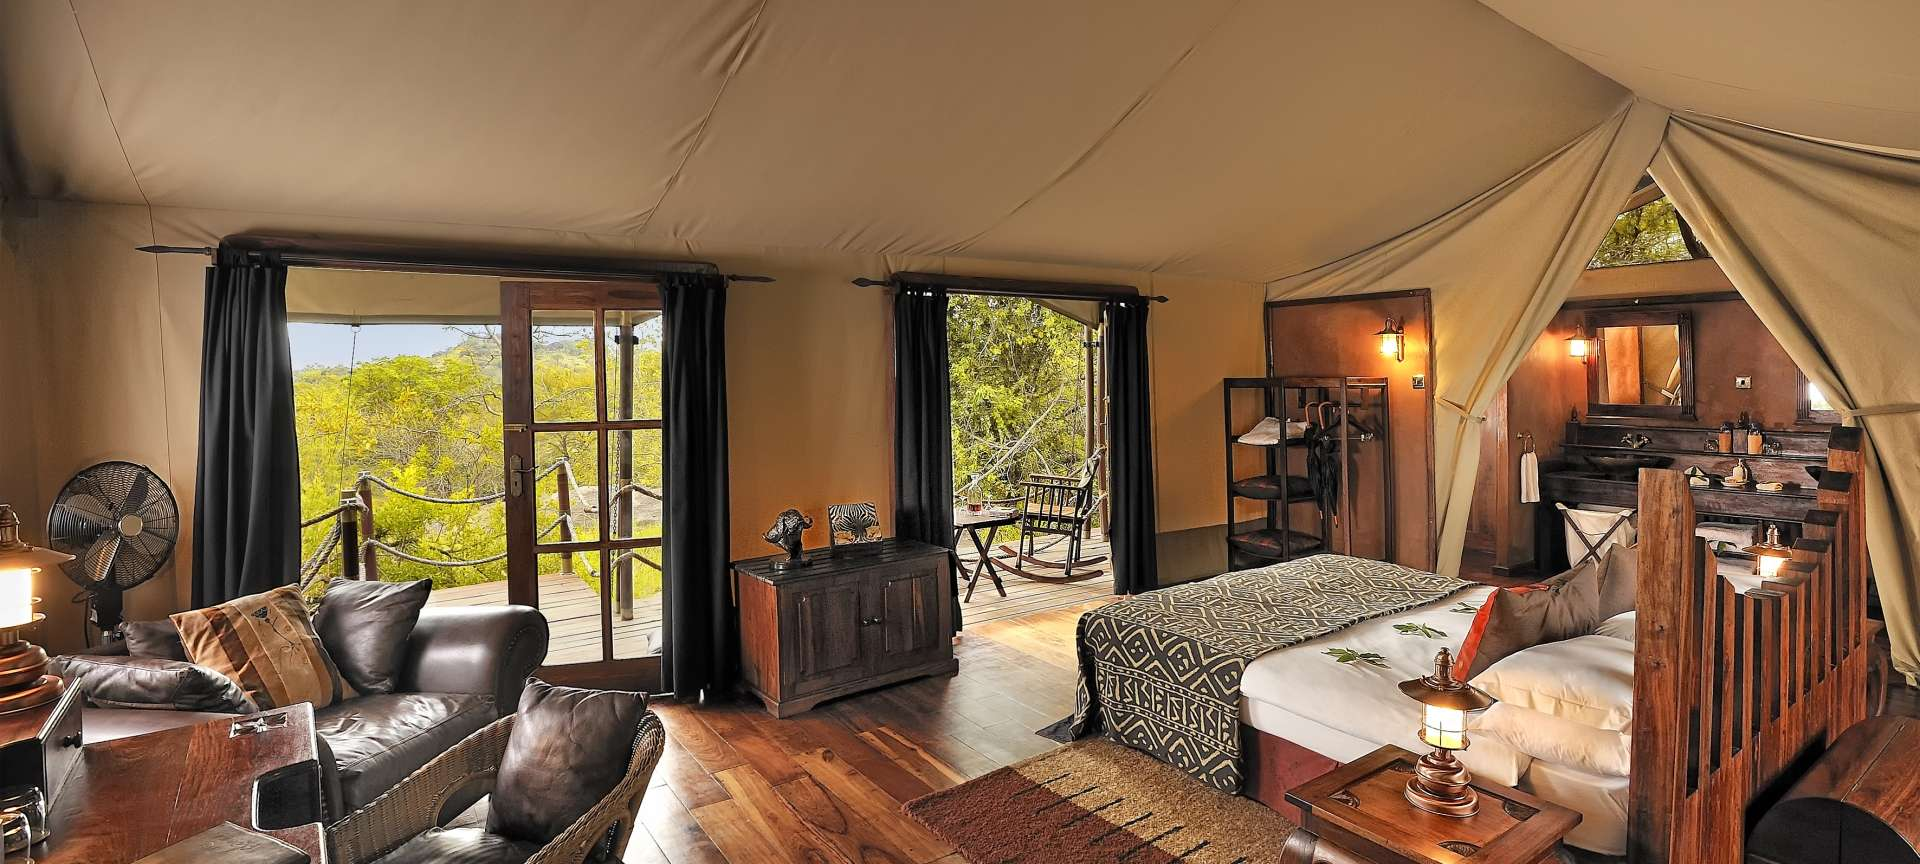 Tented Camps Accommodation